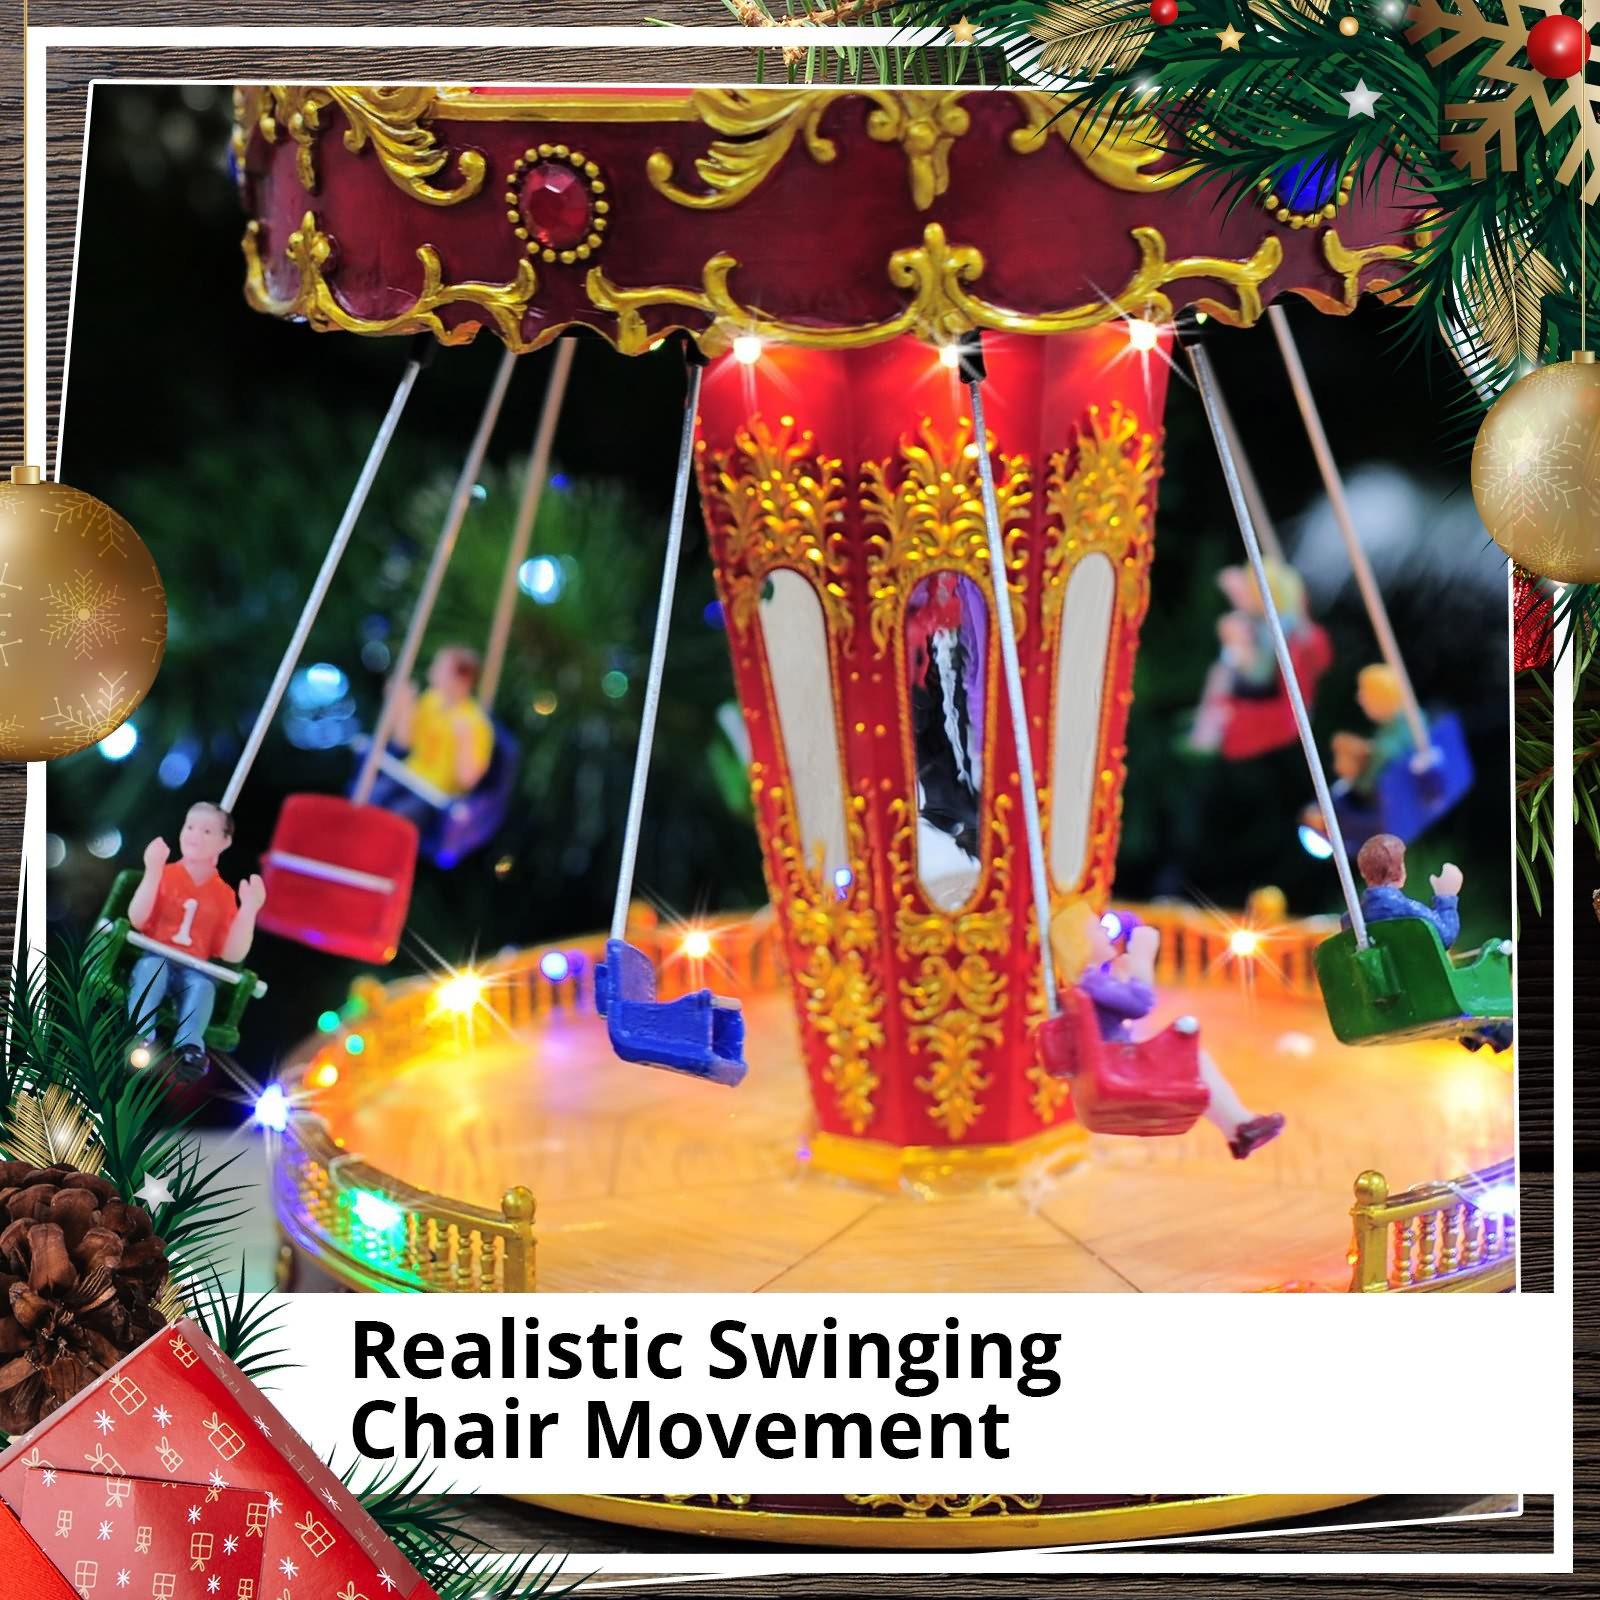 Christmas-Musical-Flying-Swing-Chairs-Working-Model-with-LED-Lights-amp-Sounds